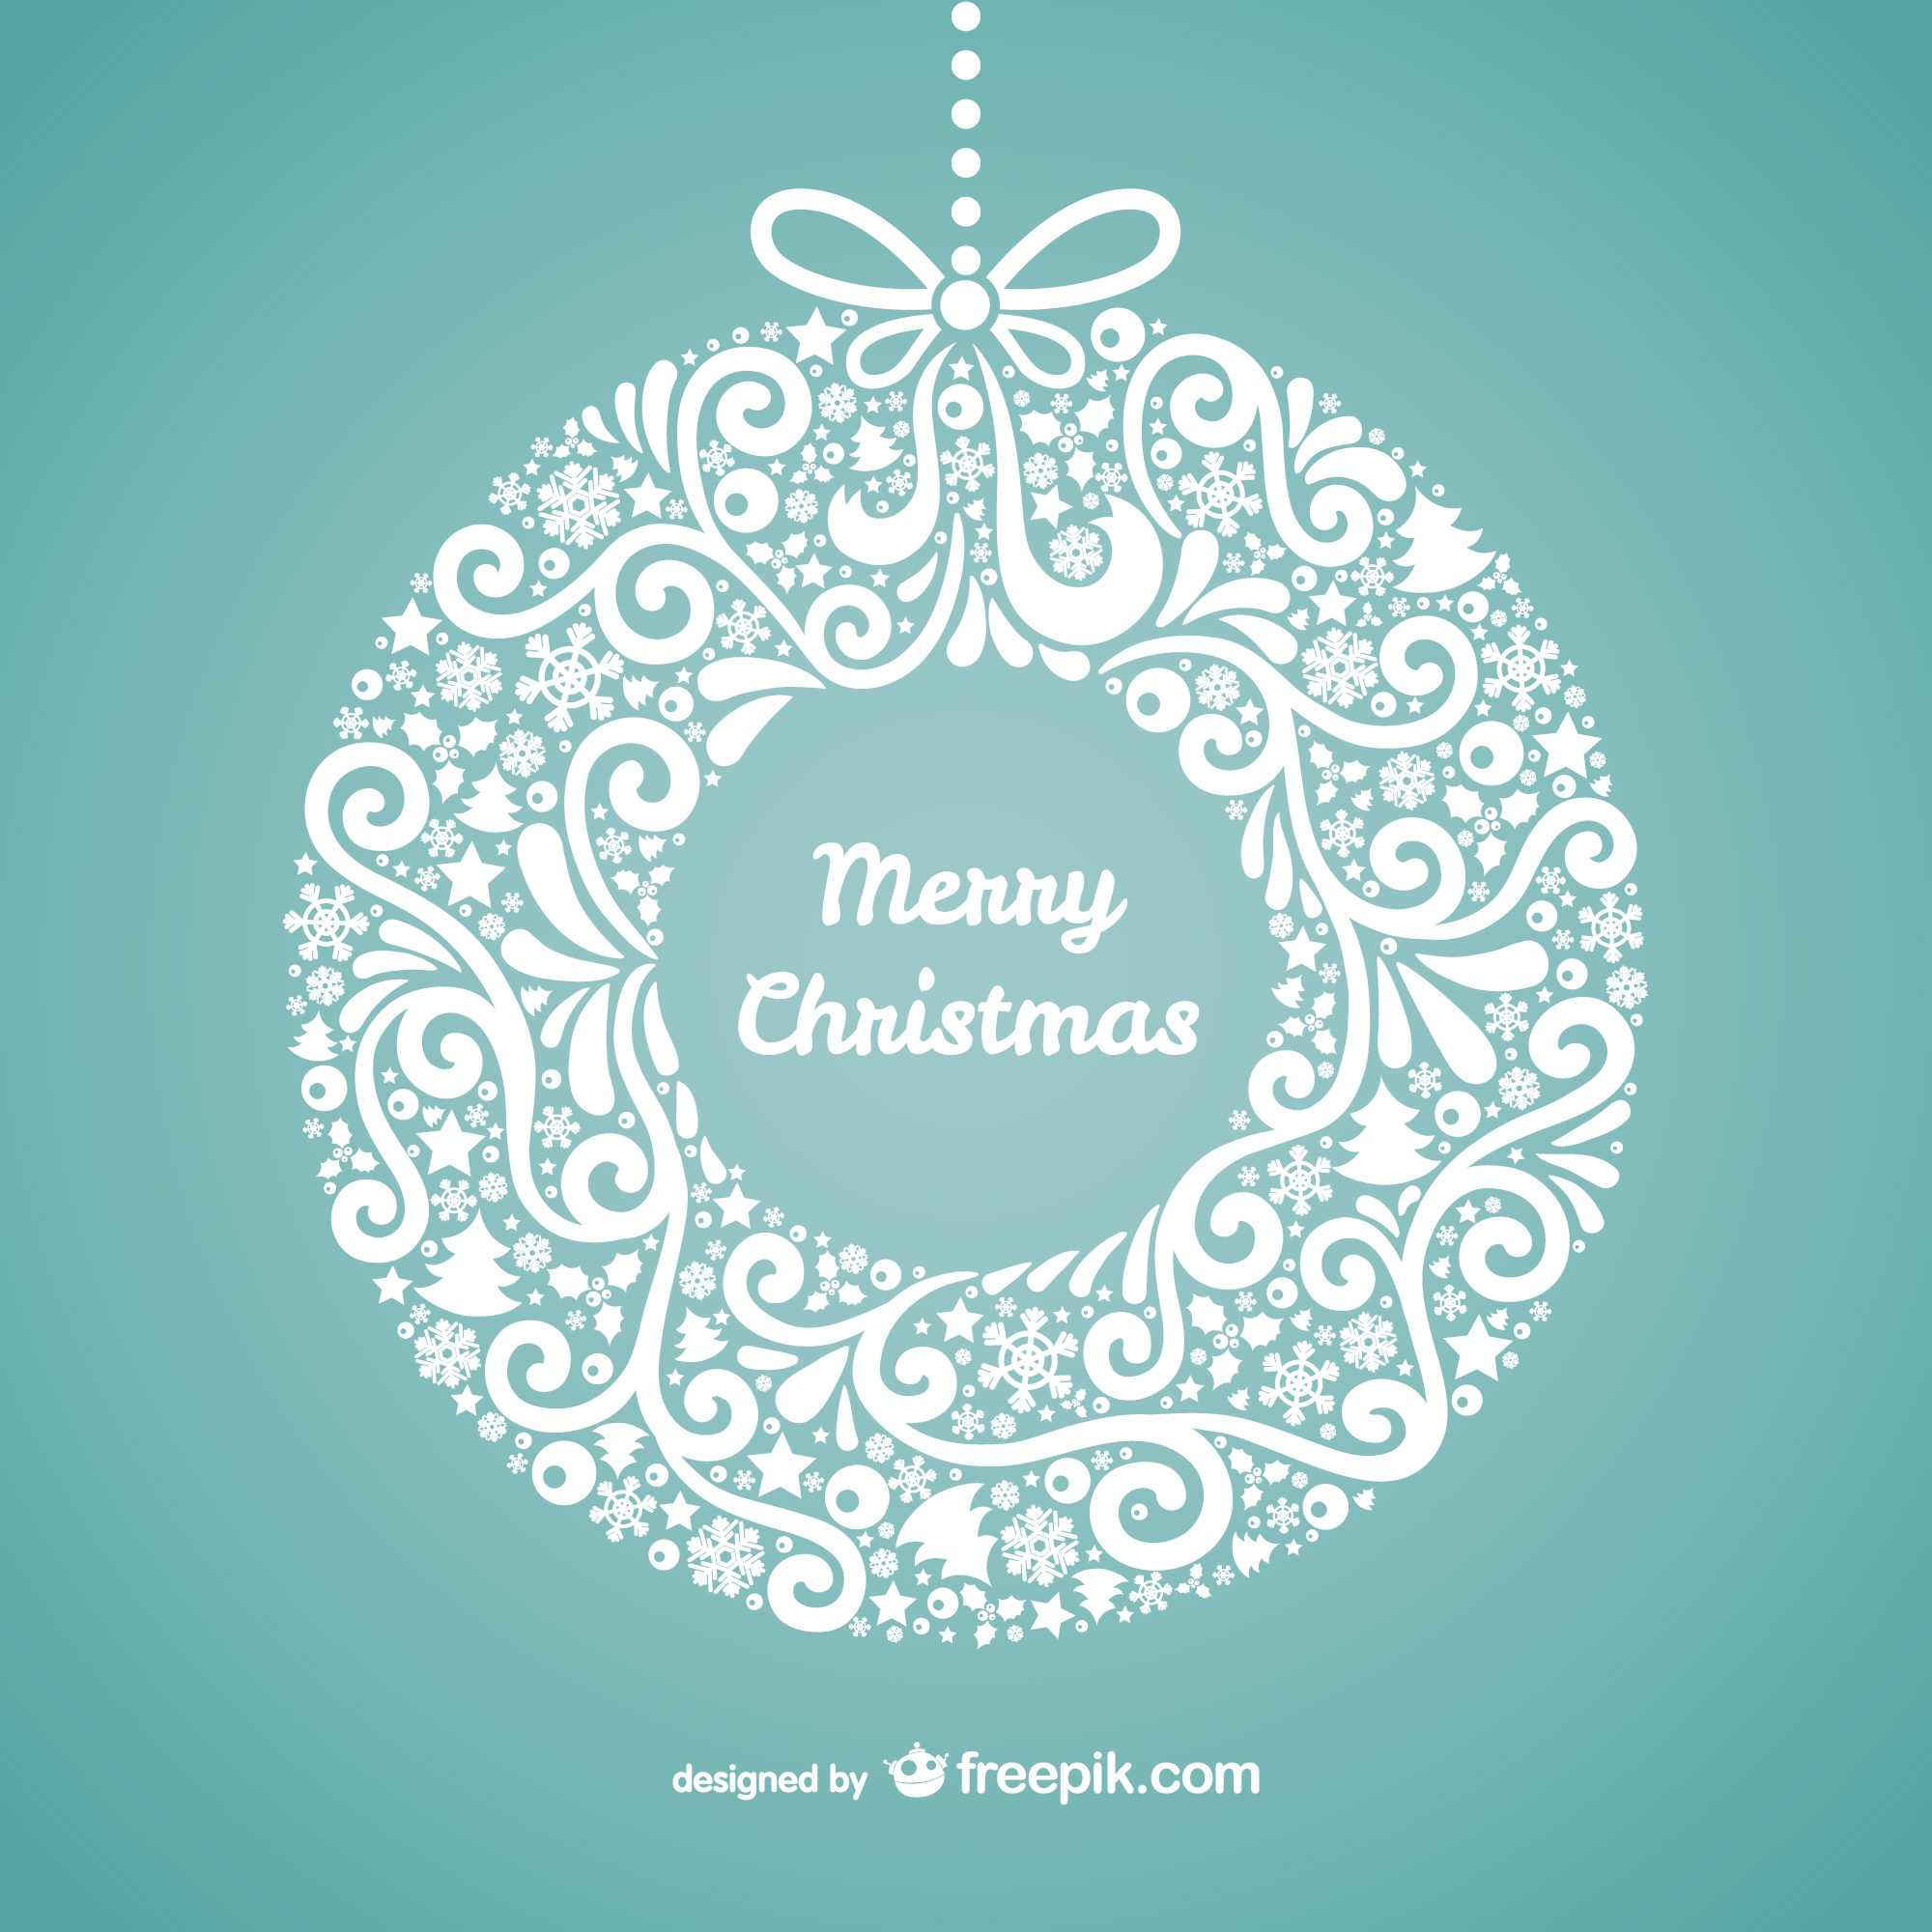 Floral merry Christmas card